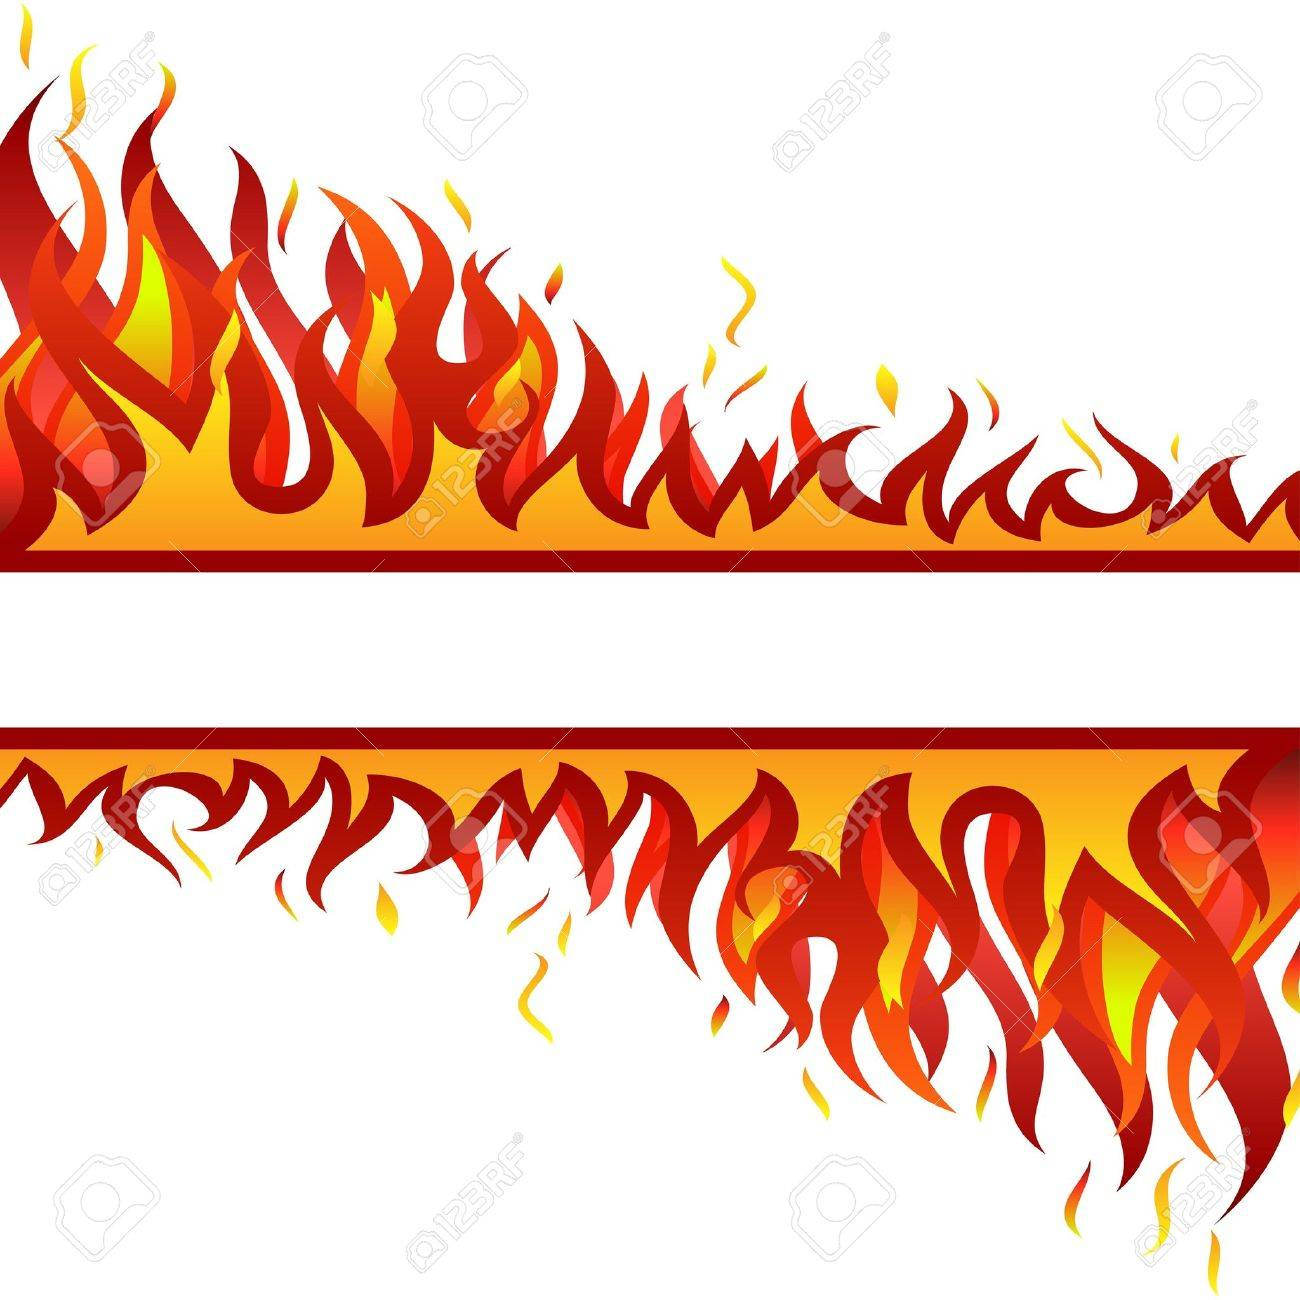 Inferno fire background for design use Stock Vector - 7296197